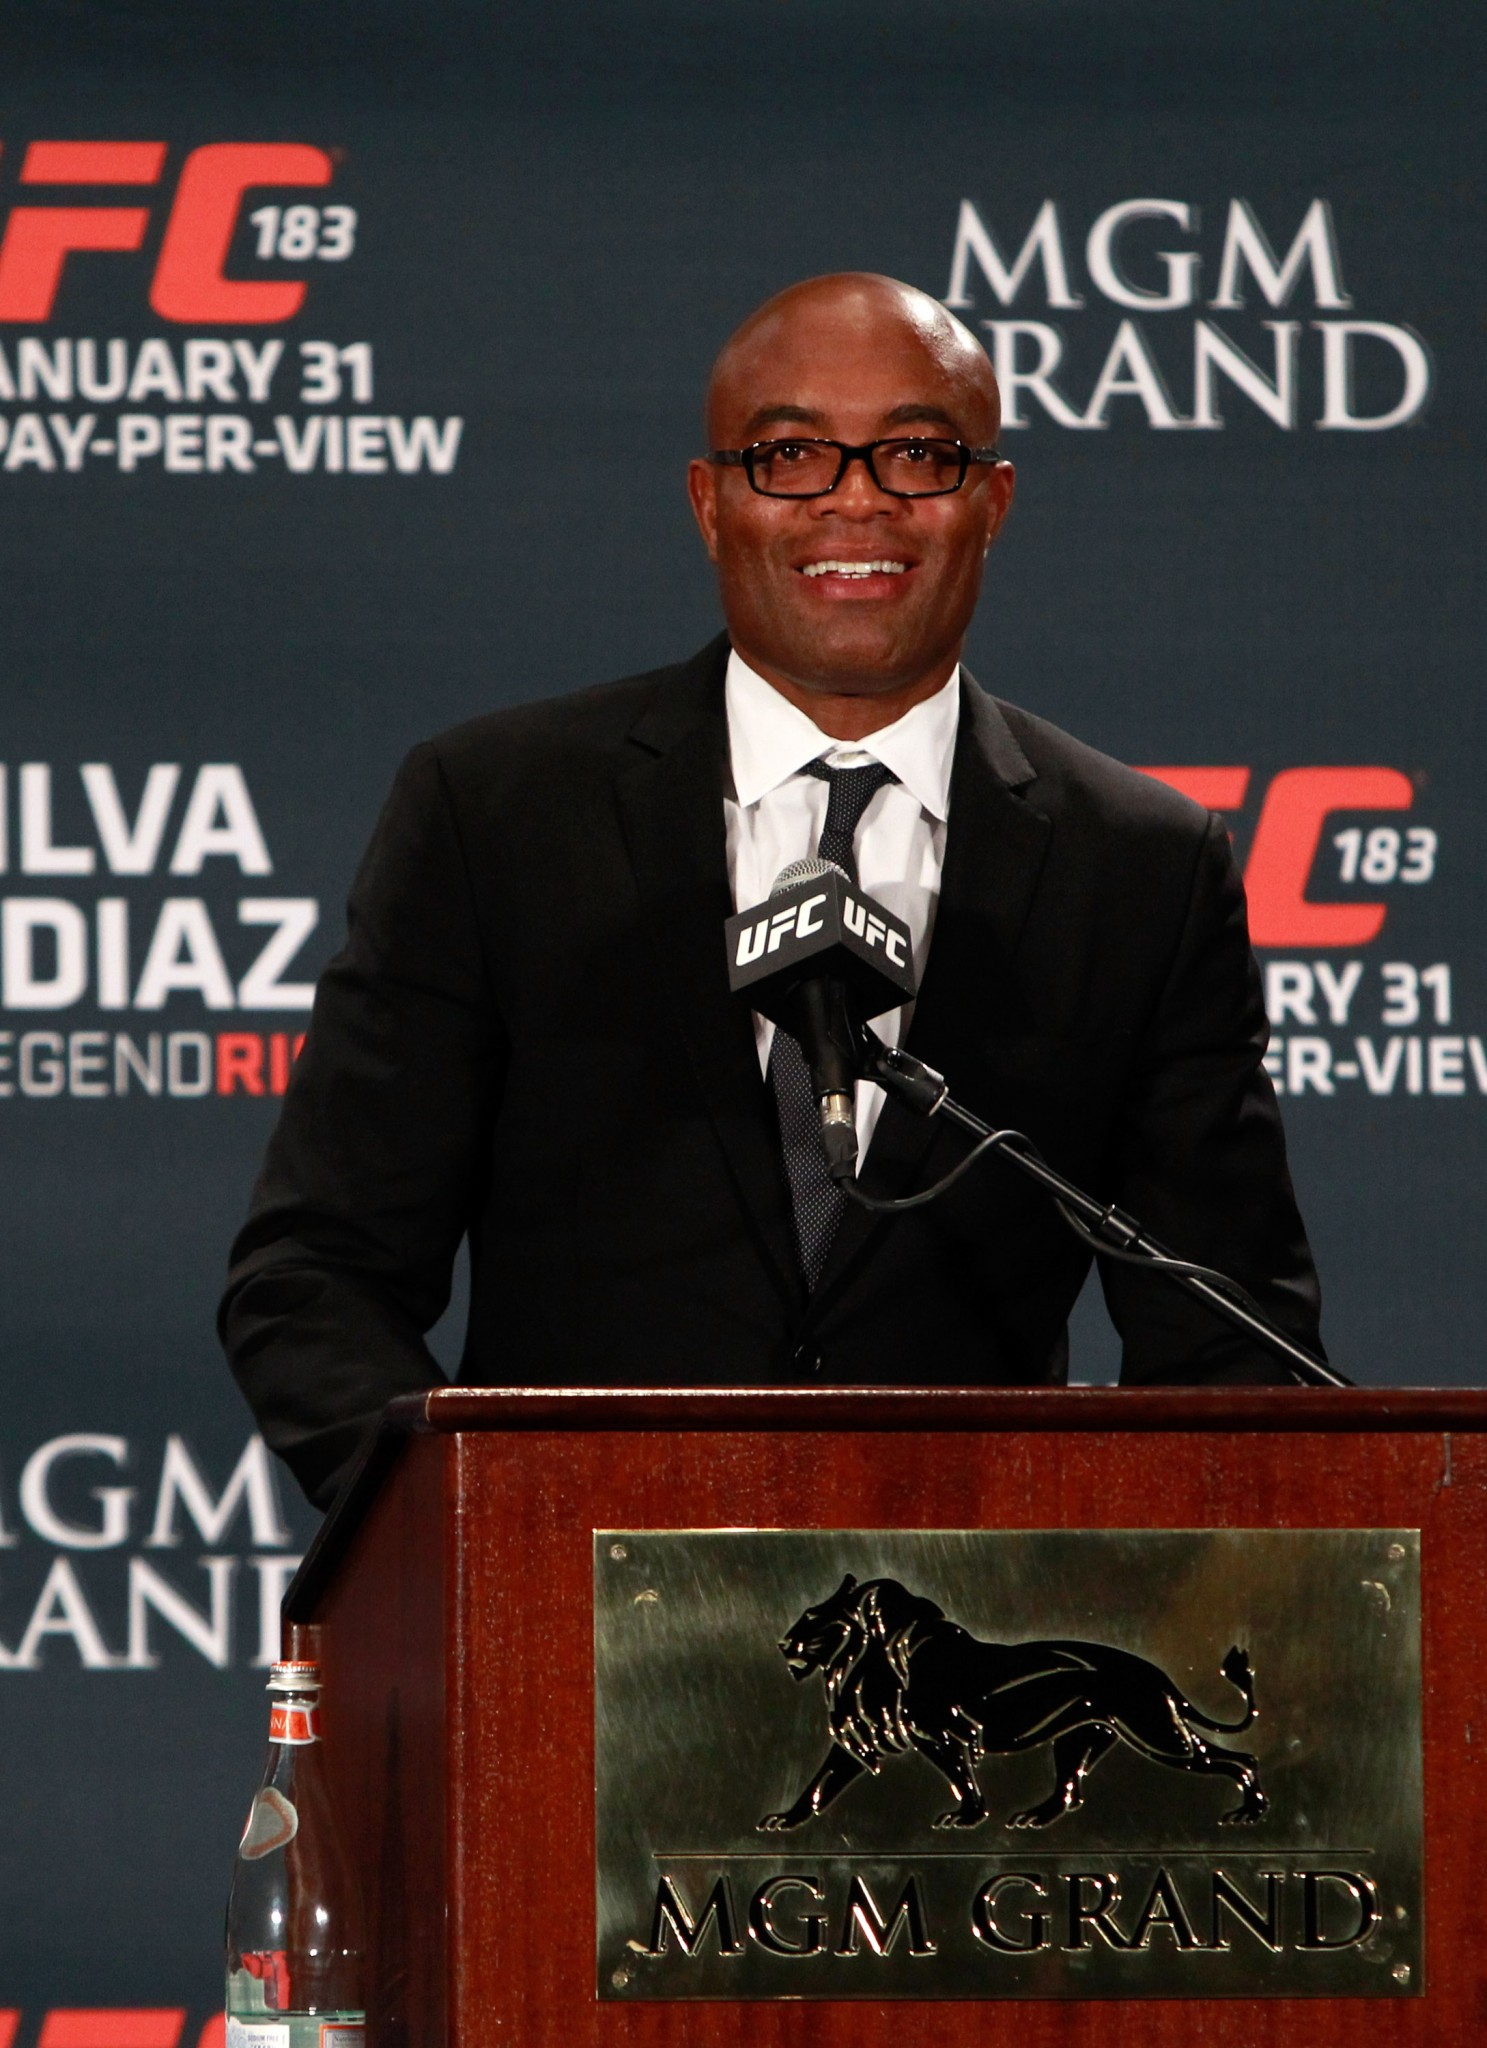 Brazil's Anderson Silva will resume his UFC career against Michael Bisping